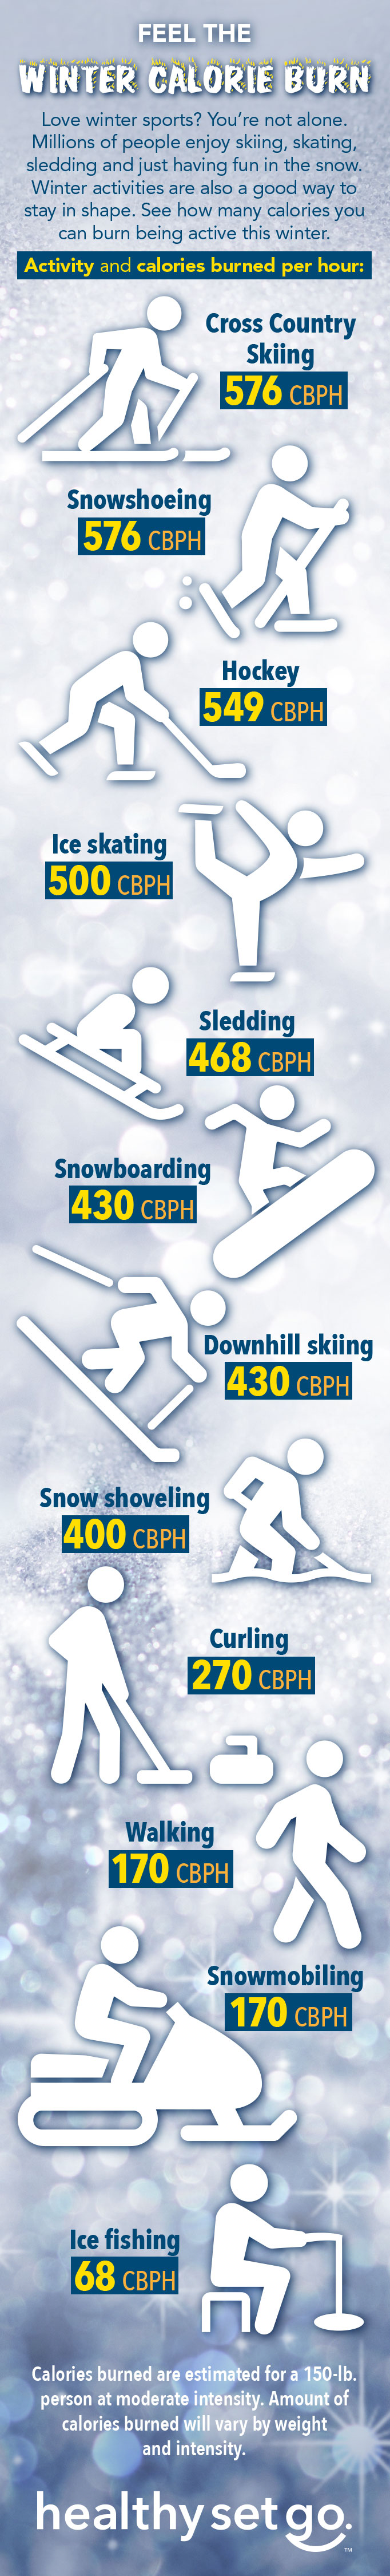 Calories burned with winter activities infographic